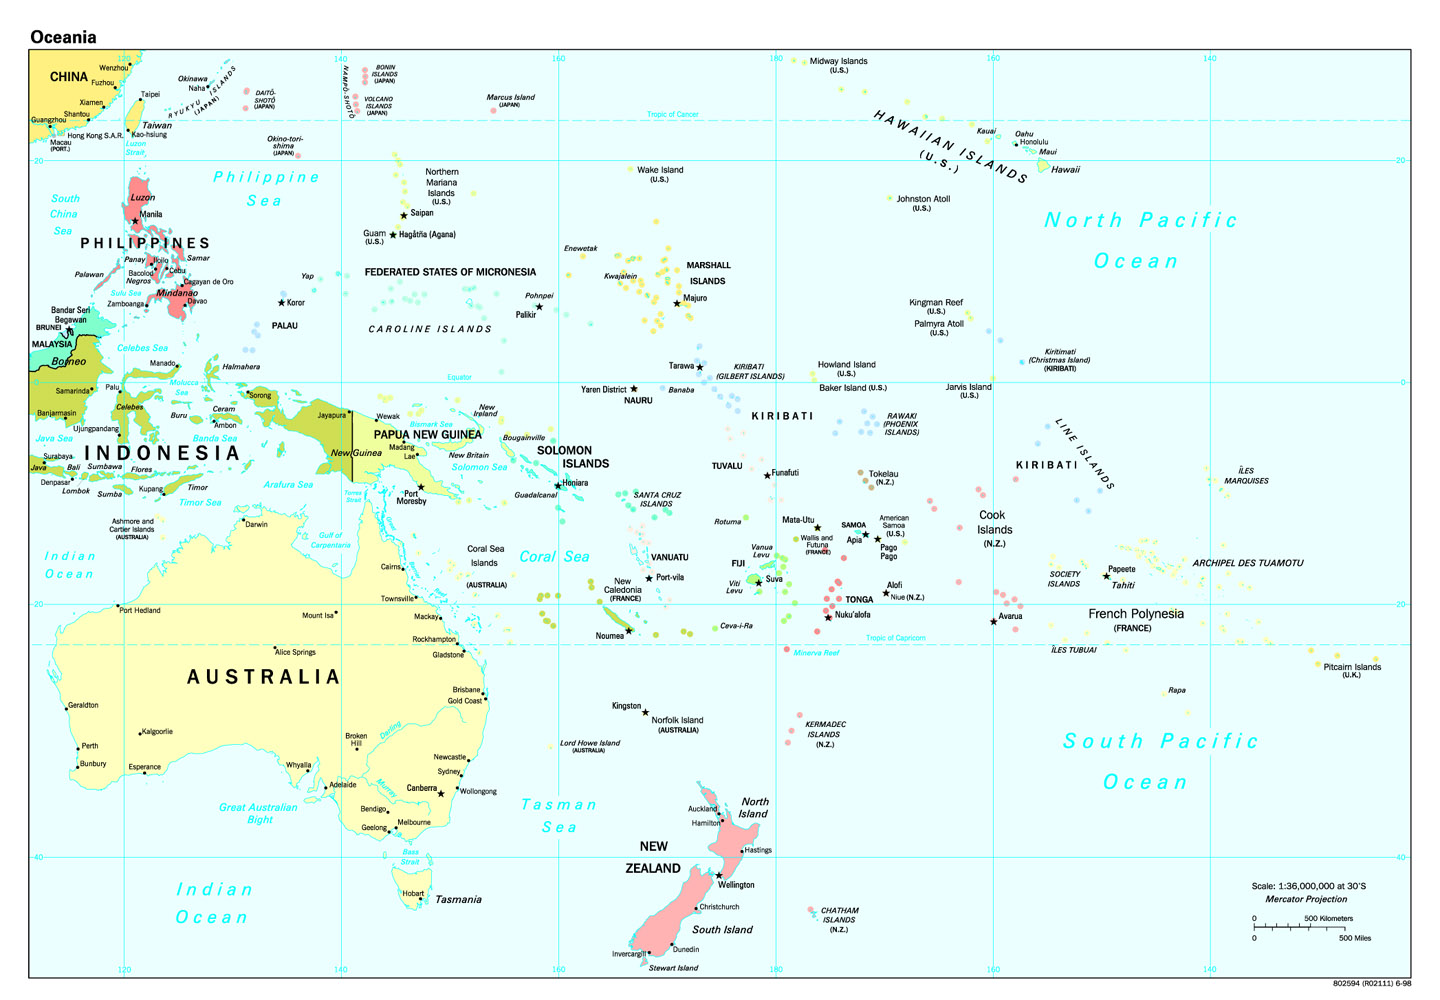 South Pacific Political Map South Pacific Ocean Political Map • Mapsof.net